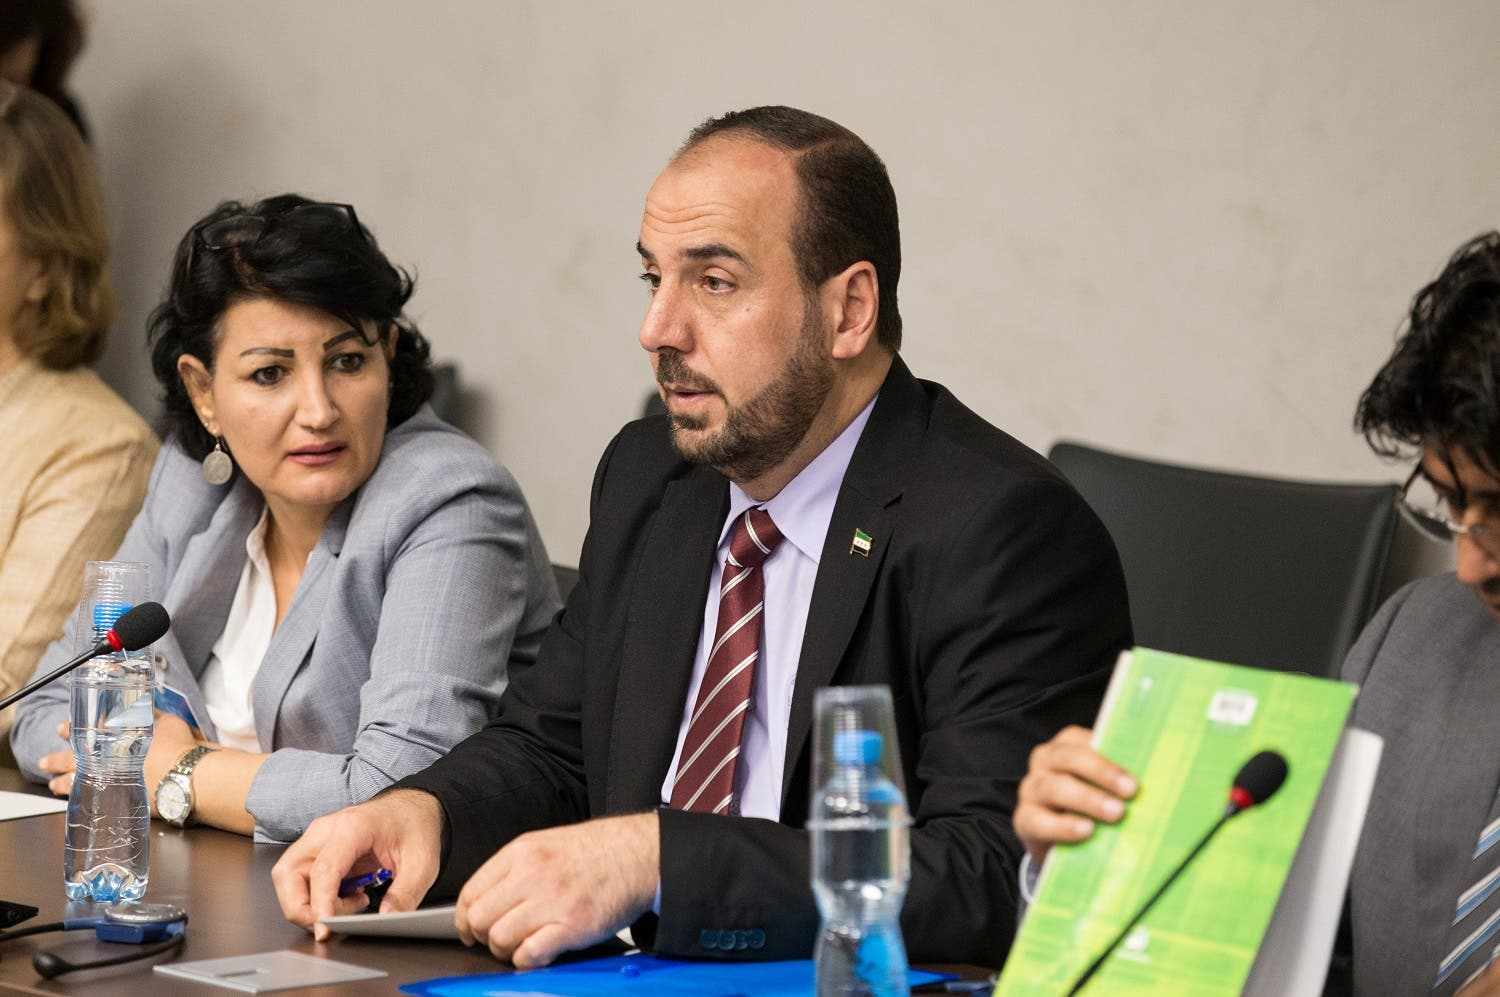 Syria's main opposition High Negotiations Committee (HNC) leader Nasr al-Hariri (C) attends a new round of negotiation with UN Special Envoy of the Secretary-General for Syria Staffan de Mistura. (Reuters)